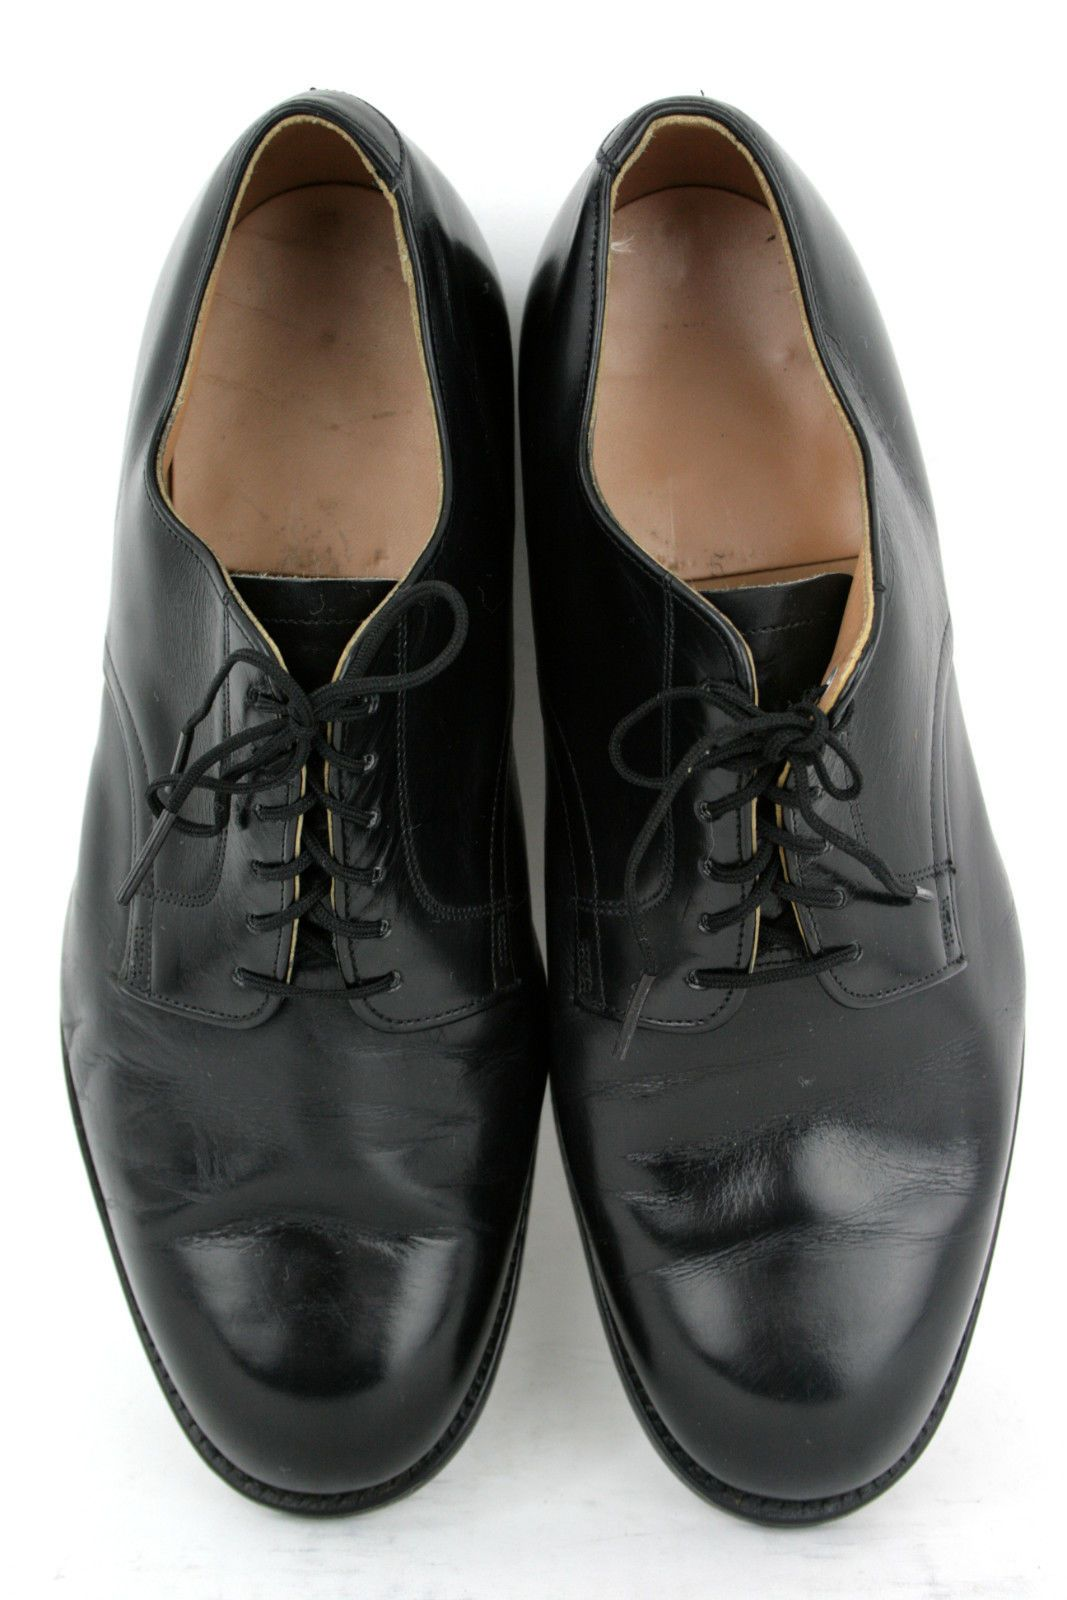 fbfff02d97f D.J. Leavenworth Dated 1962 Black Leather Military Uniform Oxfords ...